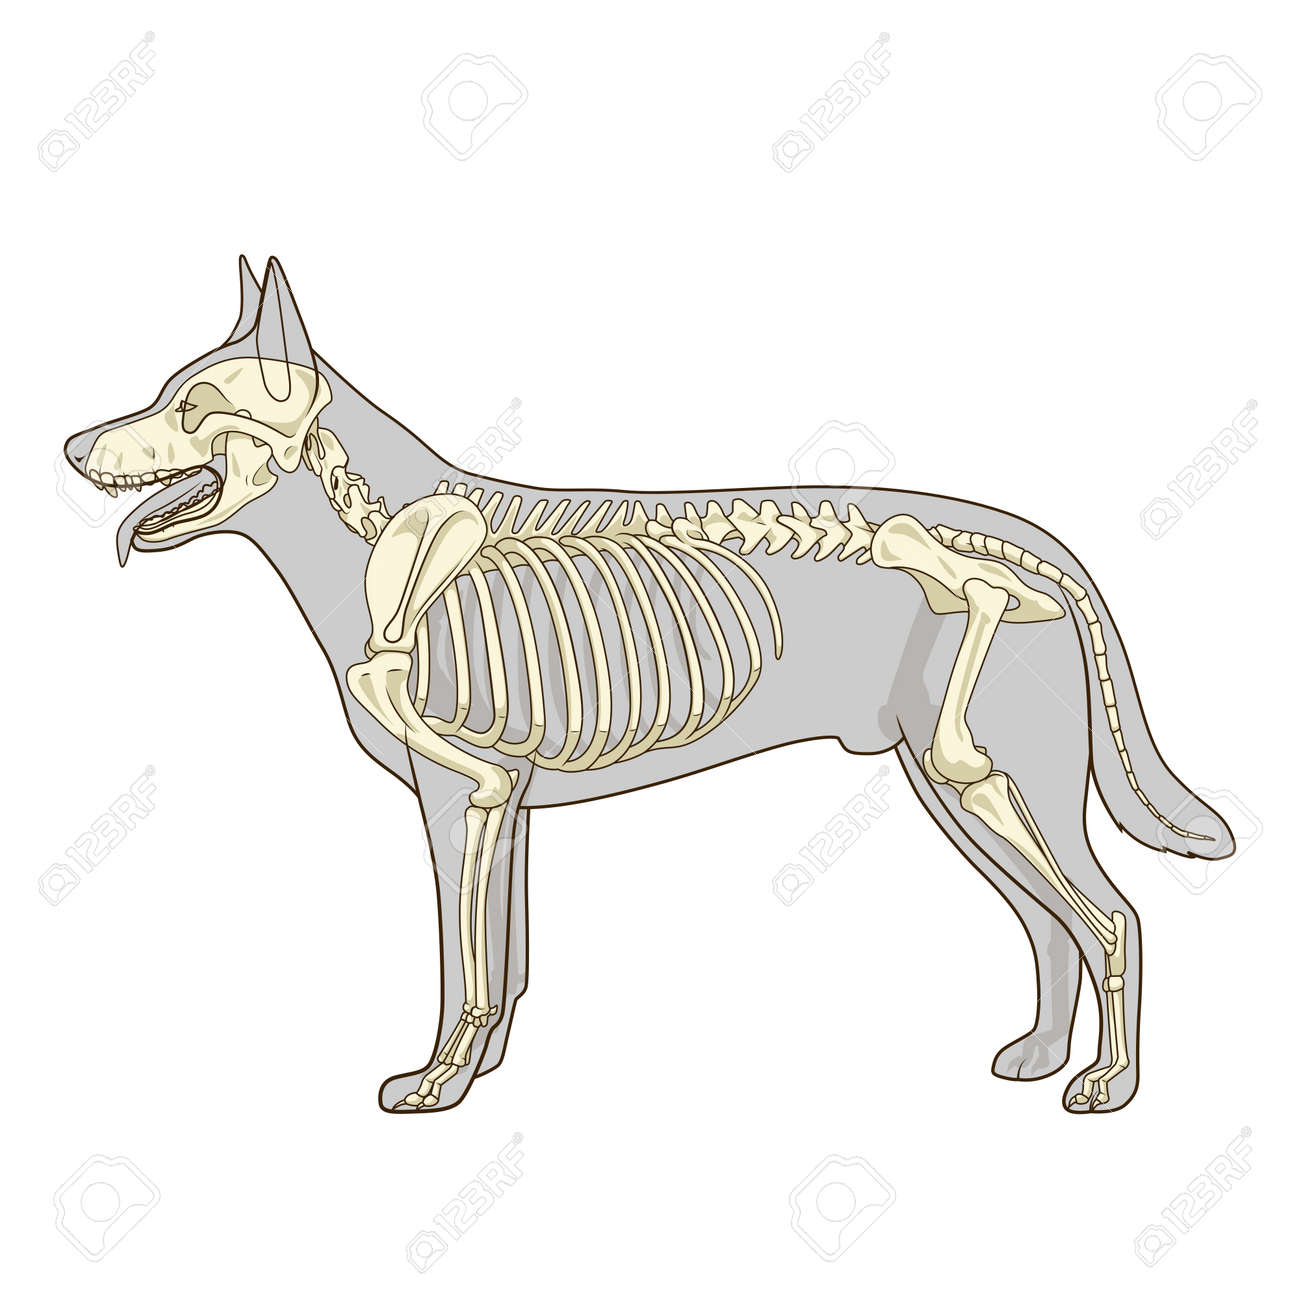 Dog Skeleton Veterinary Vector Illustration, Dog Osteology, Bones ...